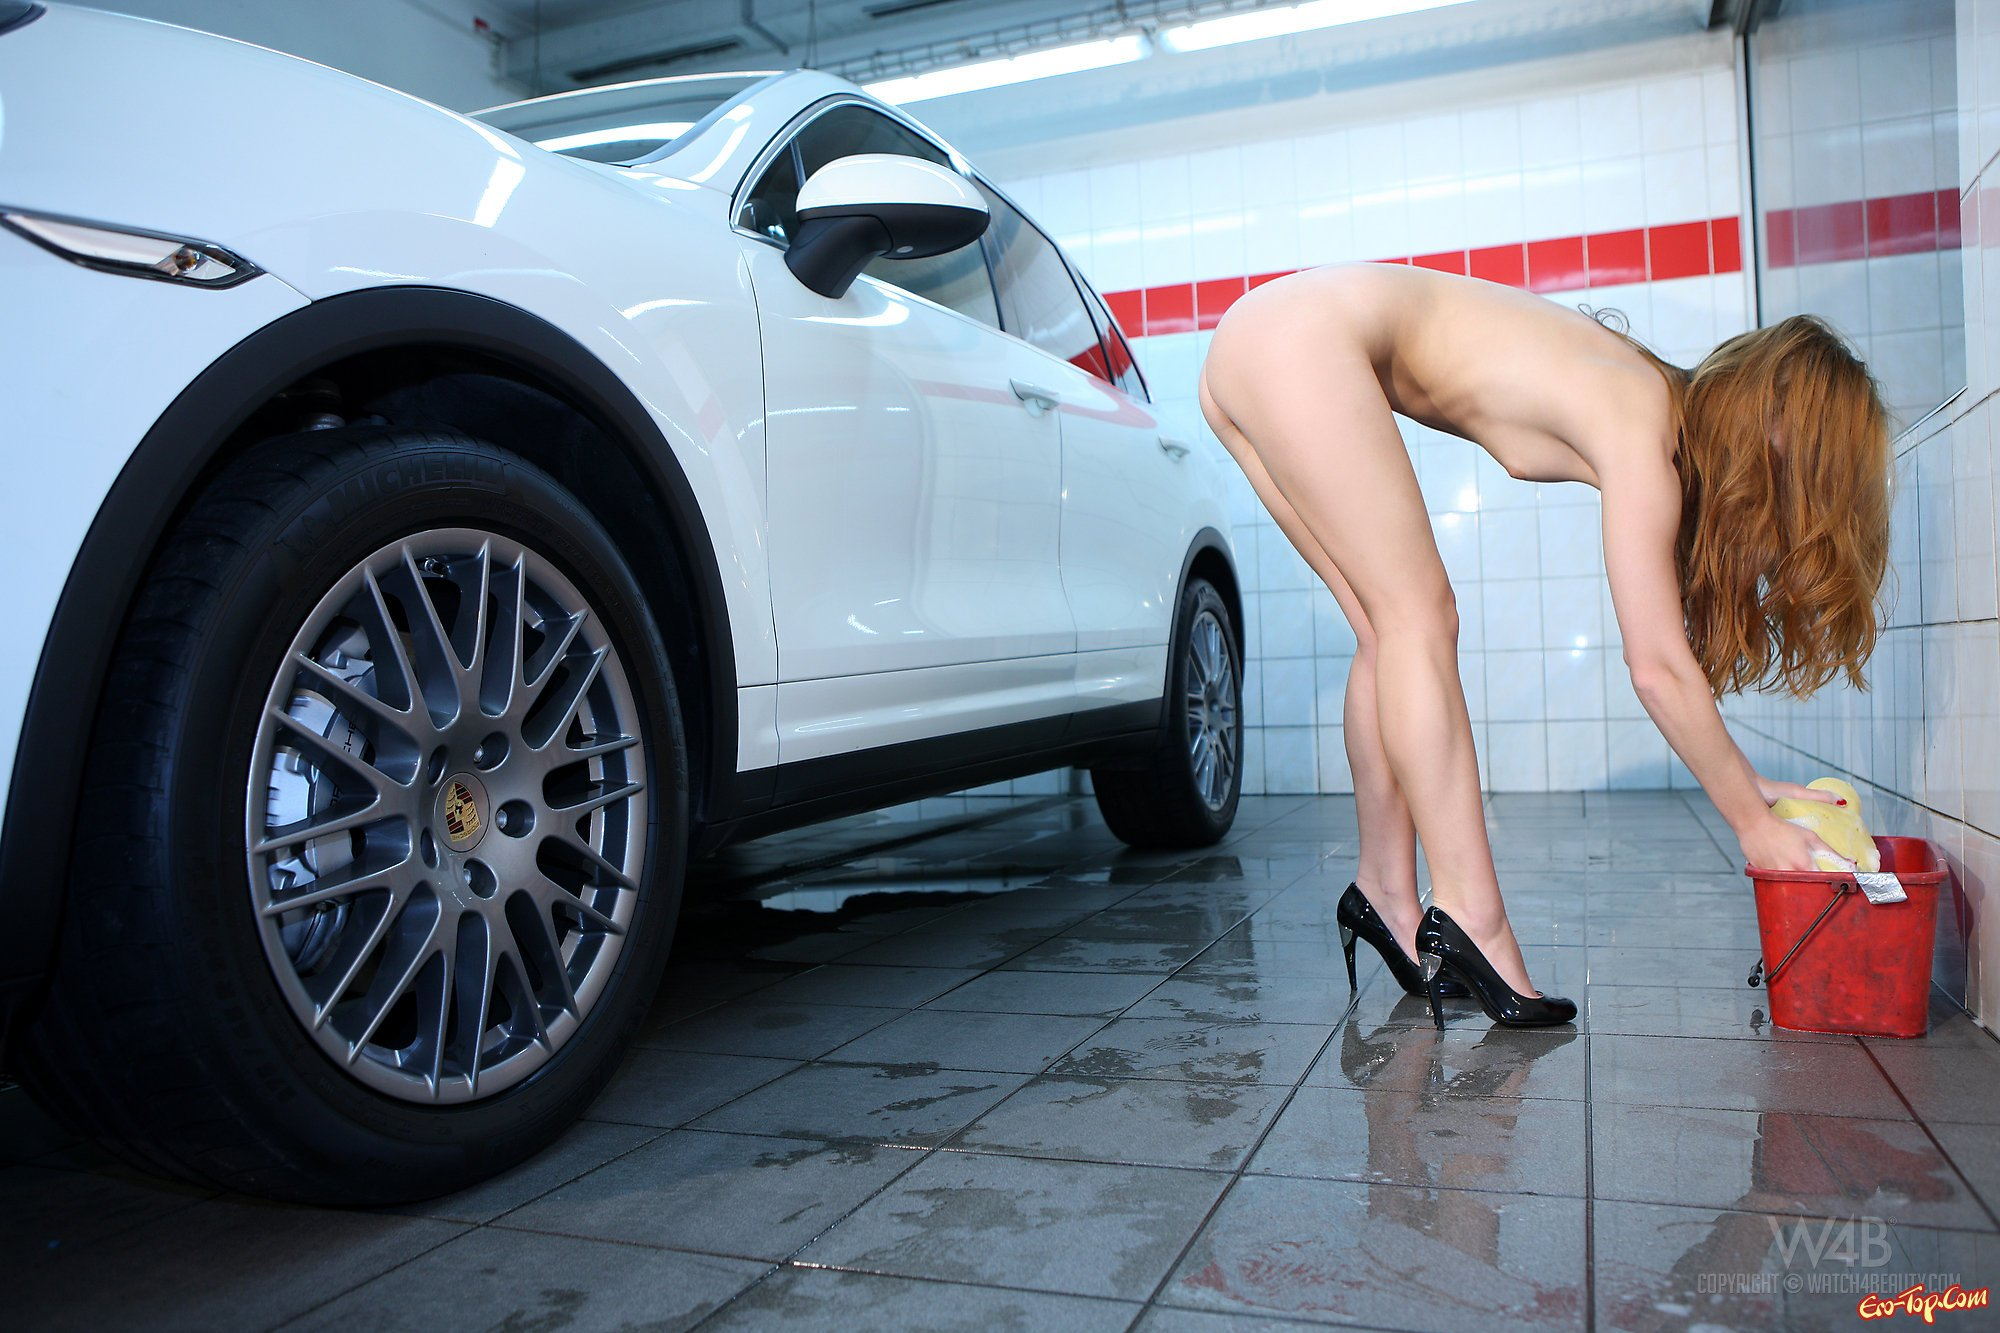 naked-car-wash-girls-best-brazzer-porn-pictures